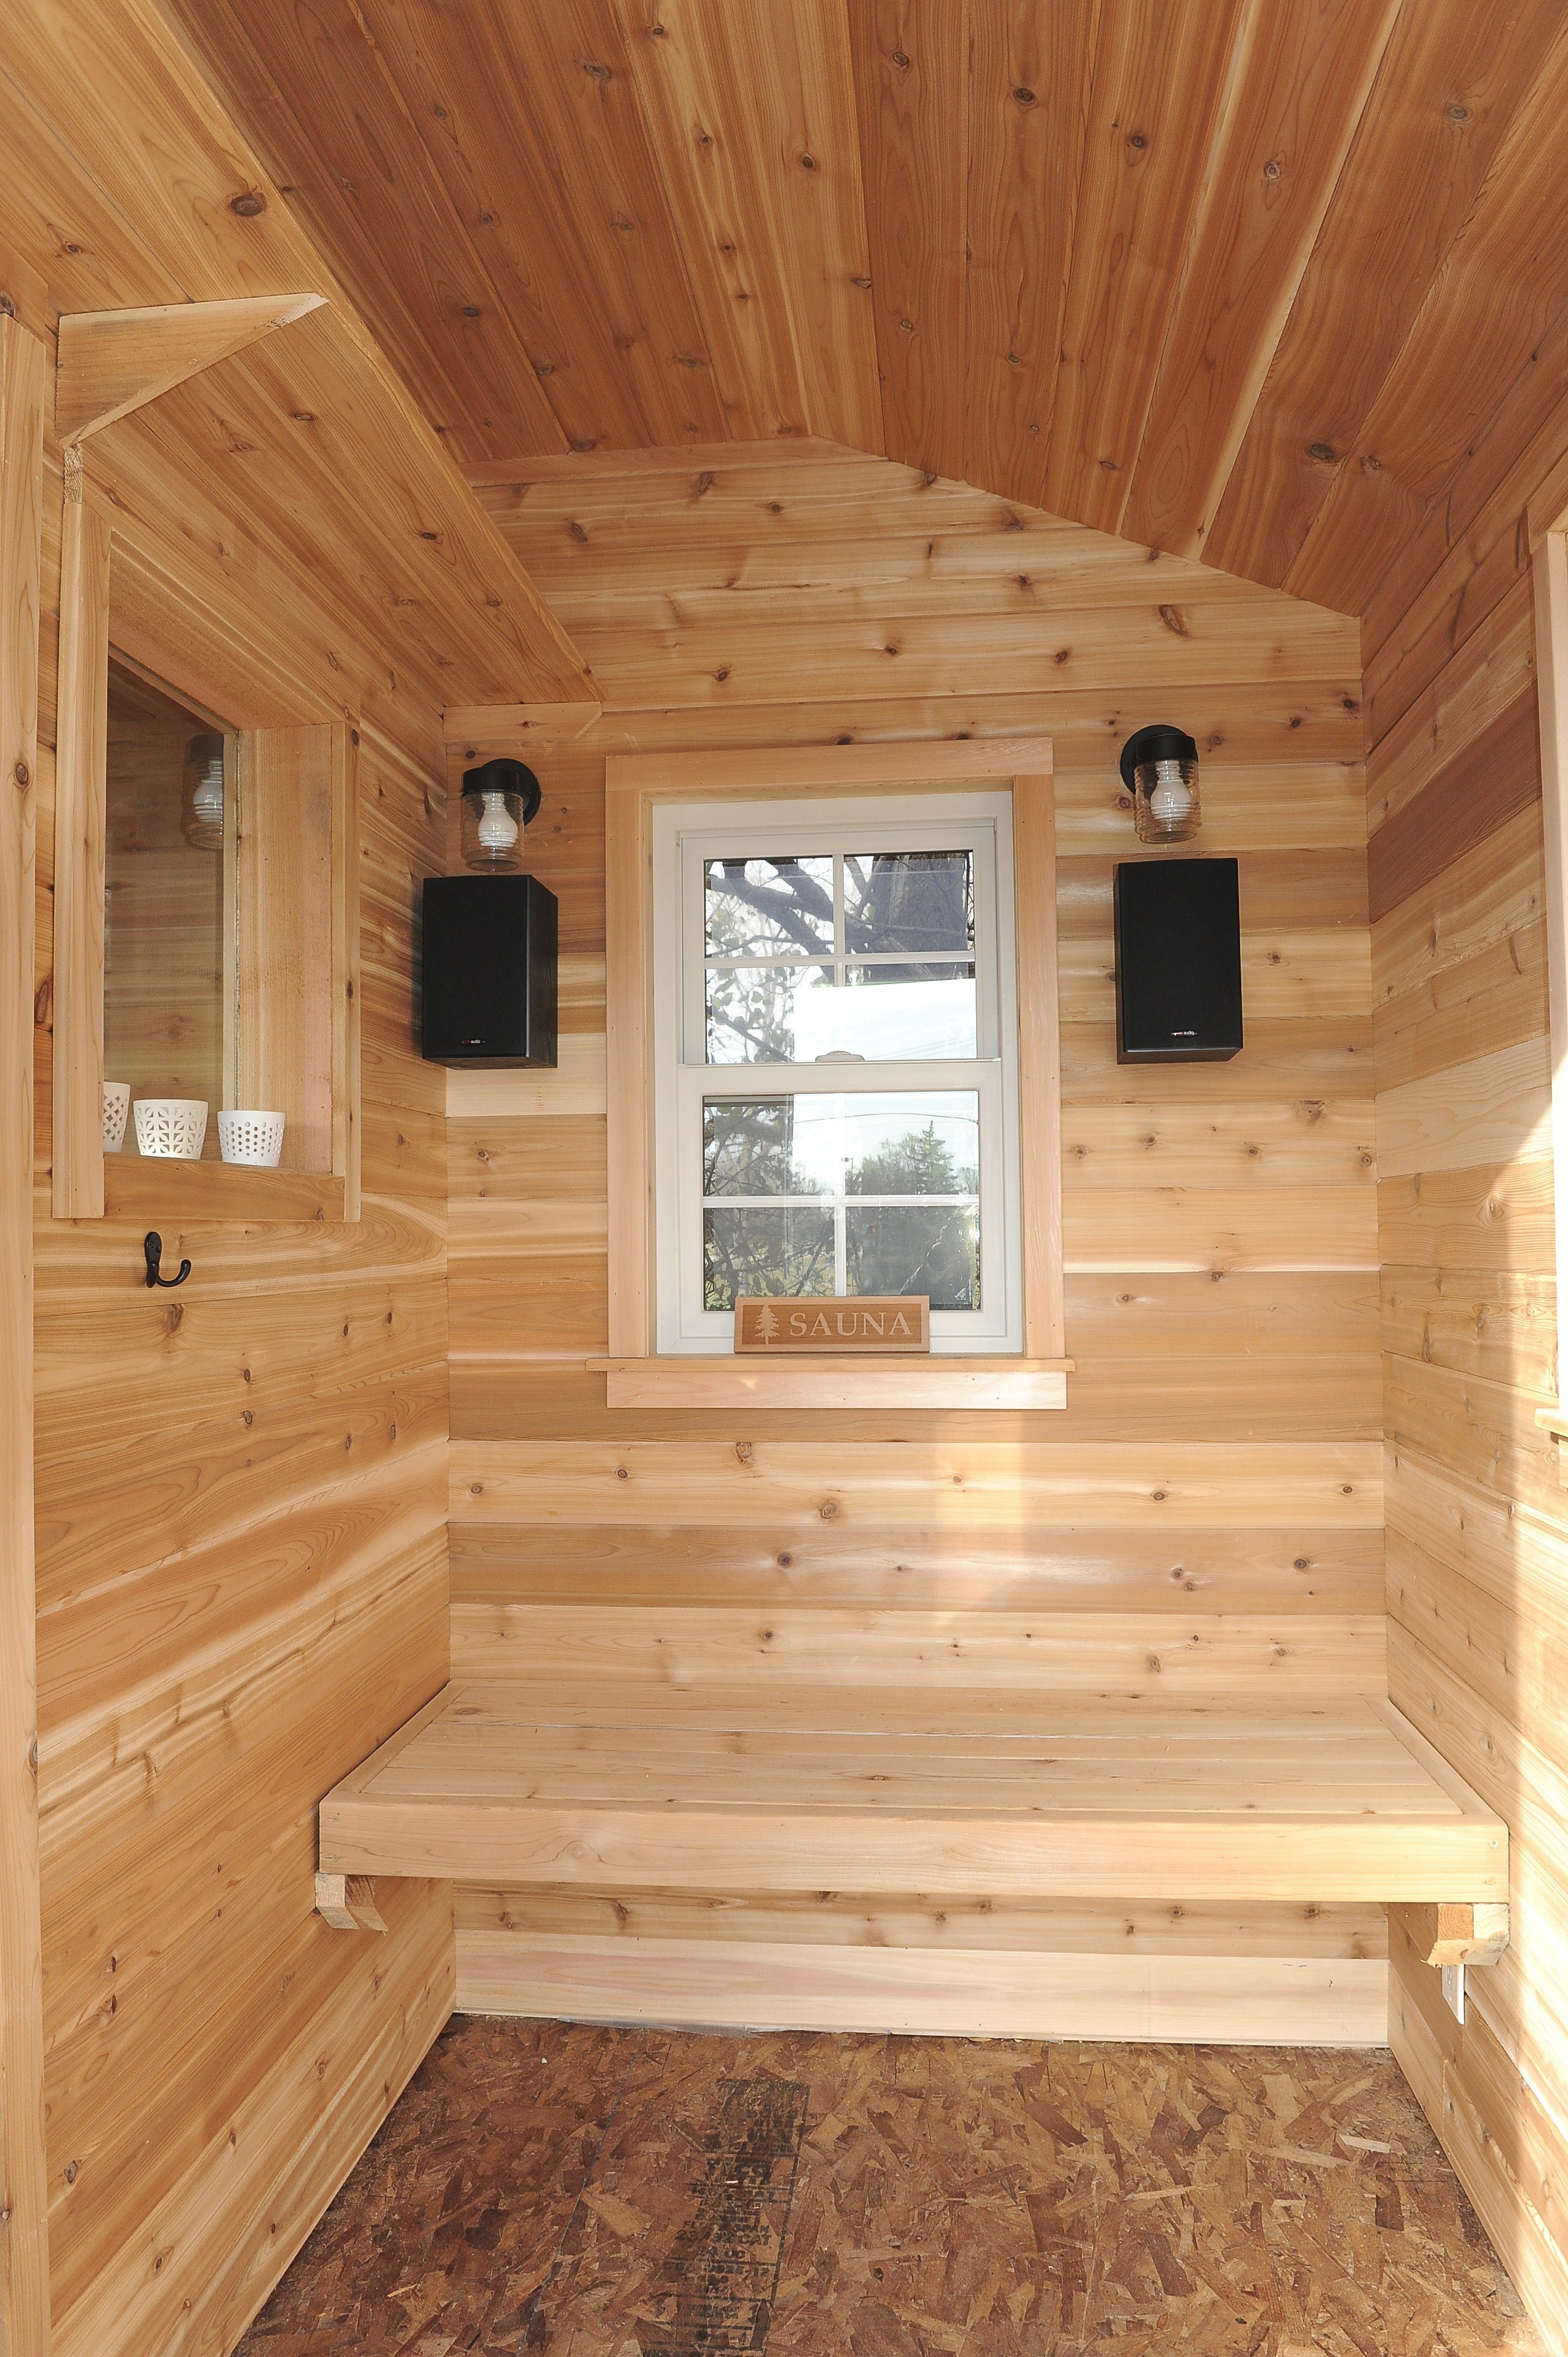 A changing room with windows and hooks and space to chill out.